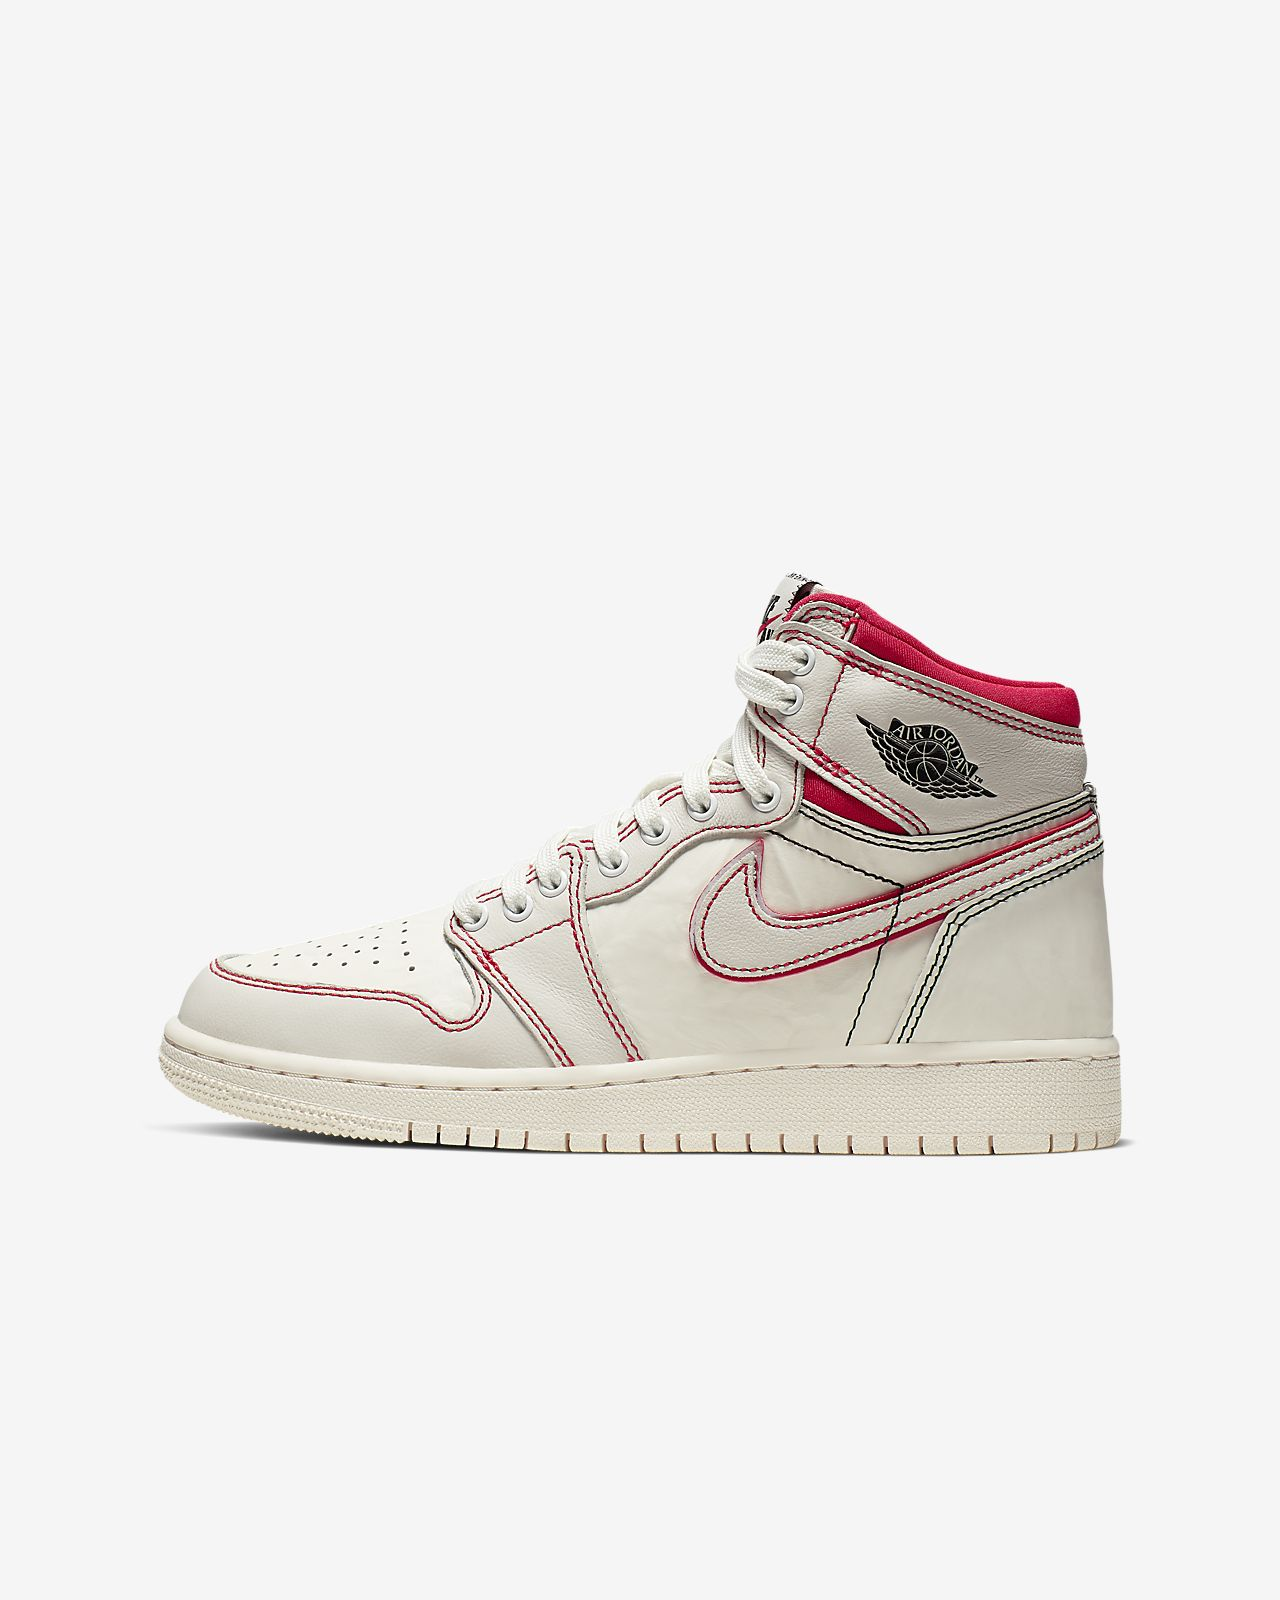 a8aa38f3f9a1 Air Jordan 1 Retro High OG Boys  Shoe. Nike.com